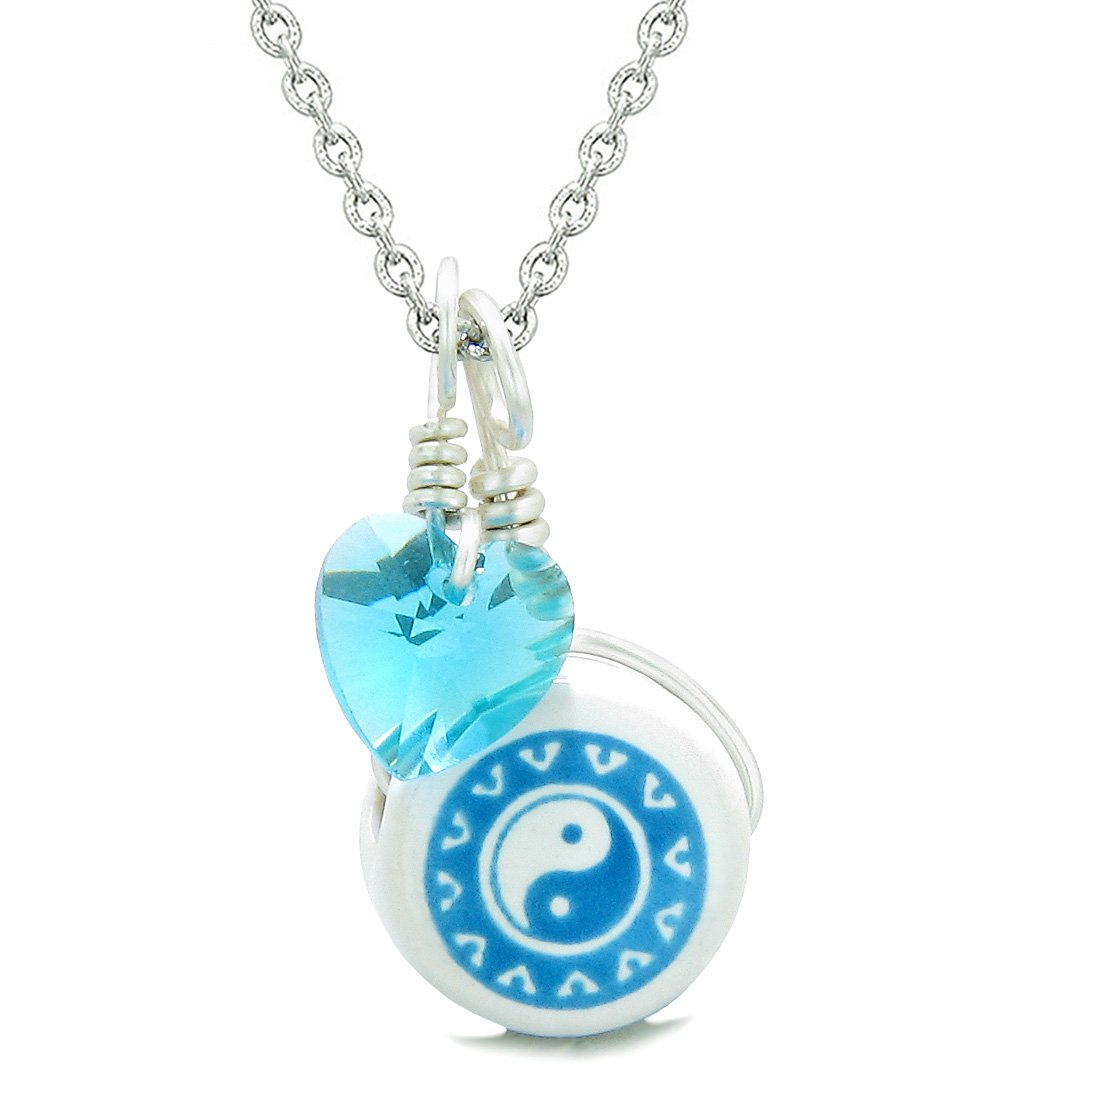 Handcrafted Cute Ceramic Lucky Charm Aqua Yin Yang Blue Heart Balance Amulet Pendant 22 Inch Necklace